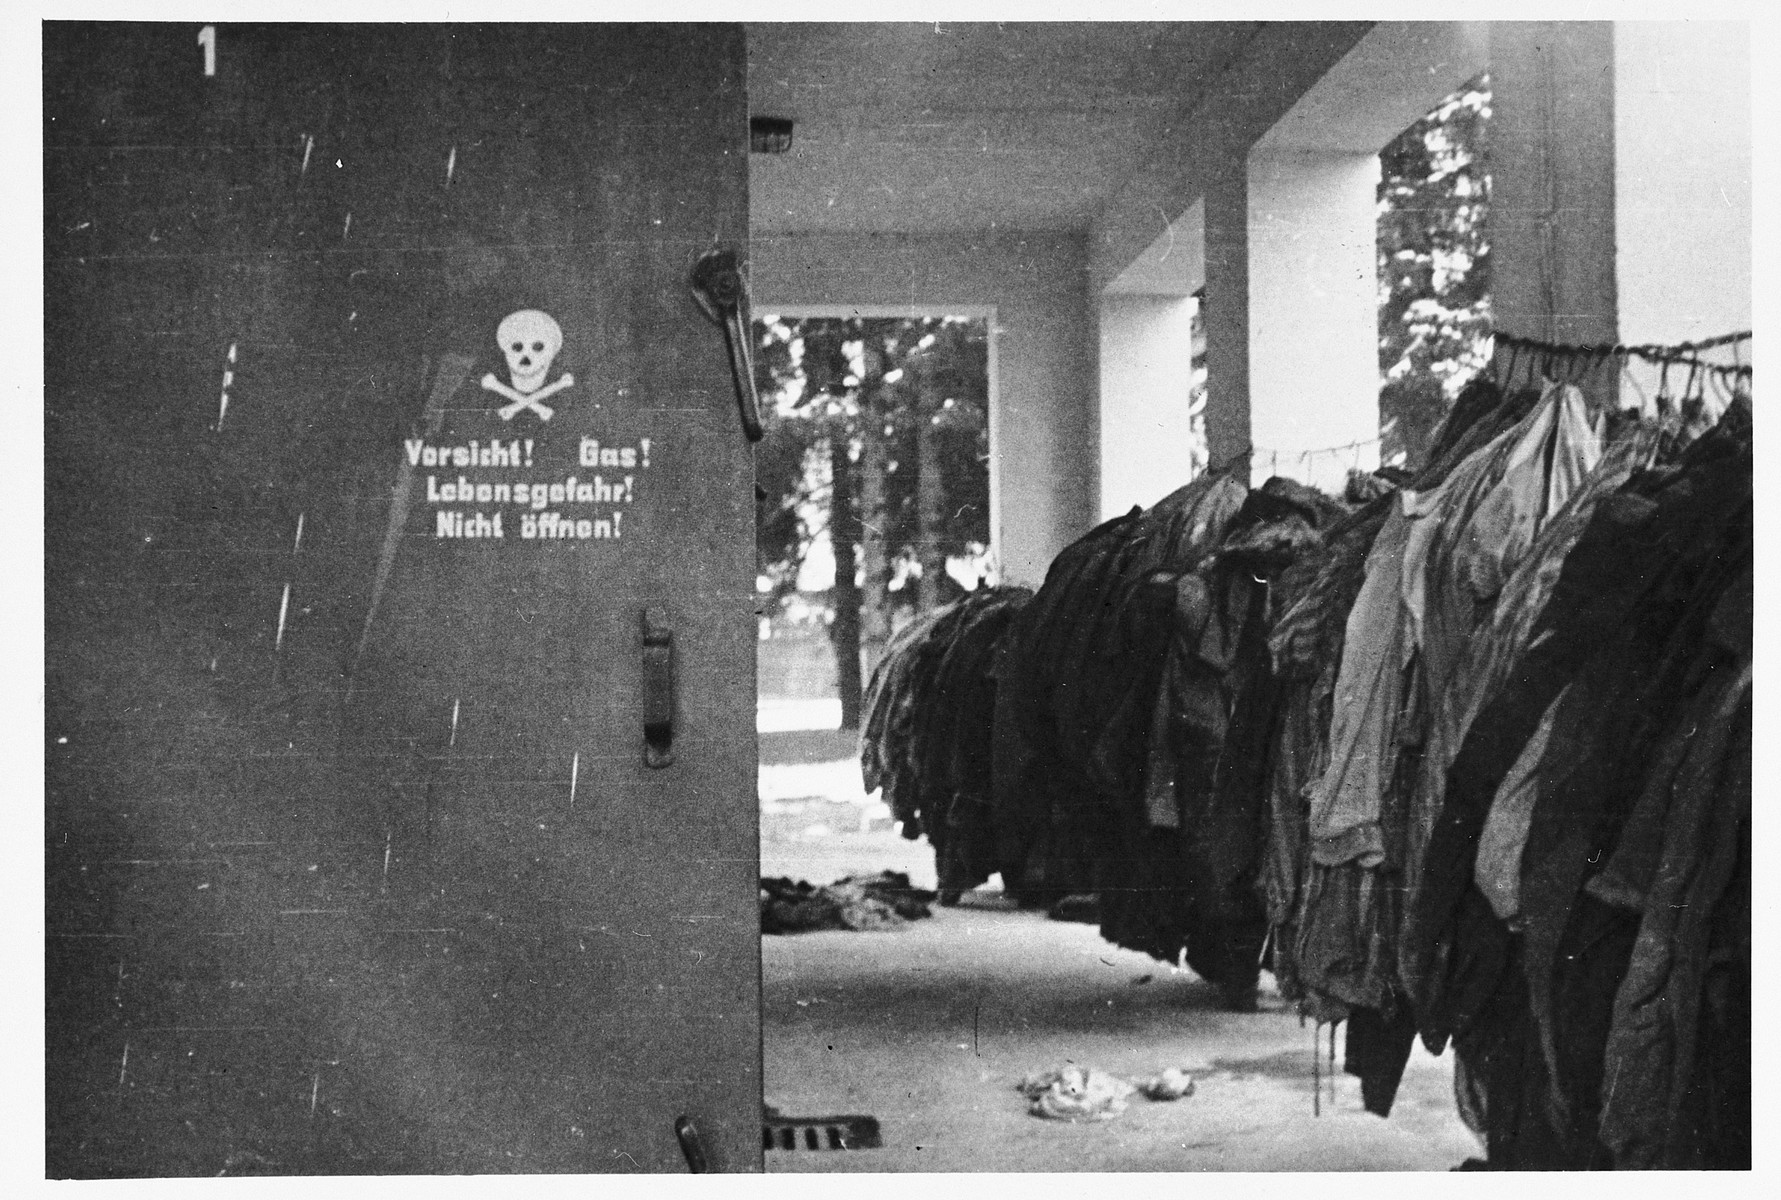 View of clothing hanging outside the gas chamber in the Dachau concentration camp.